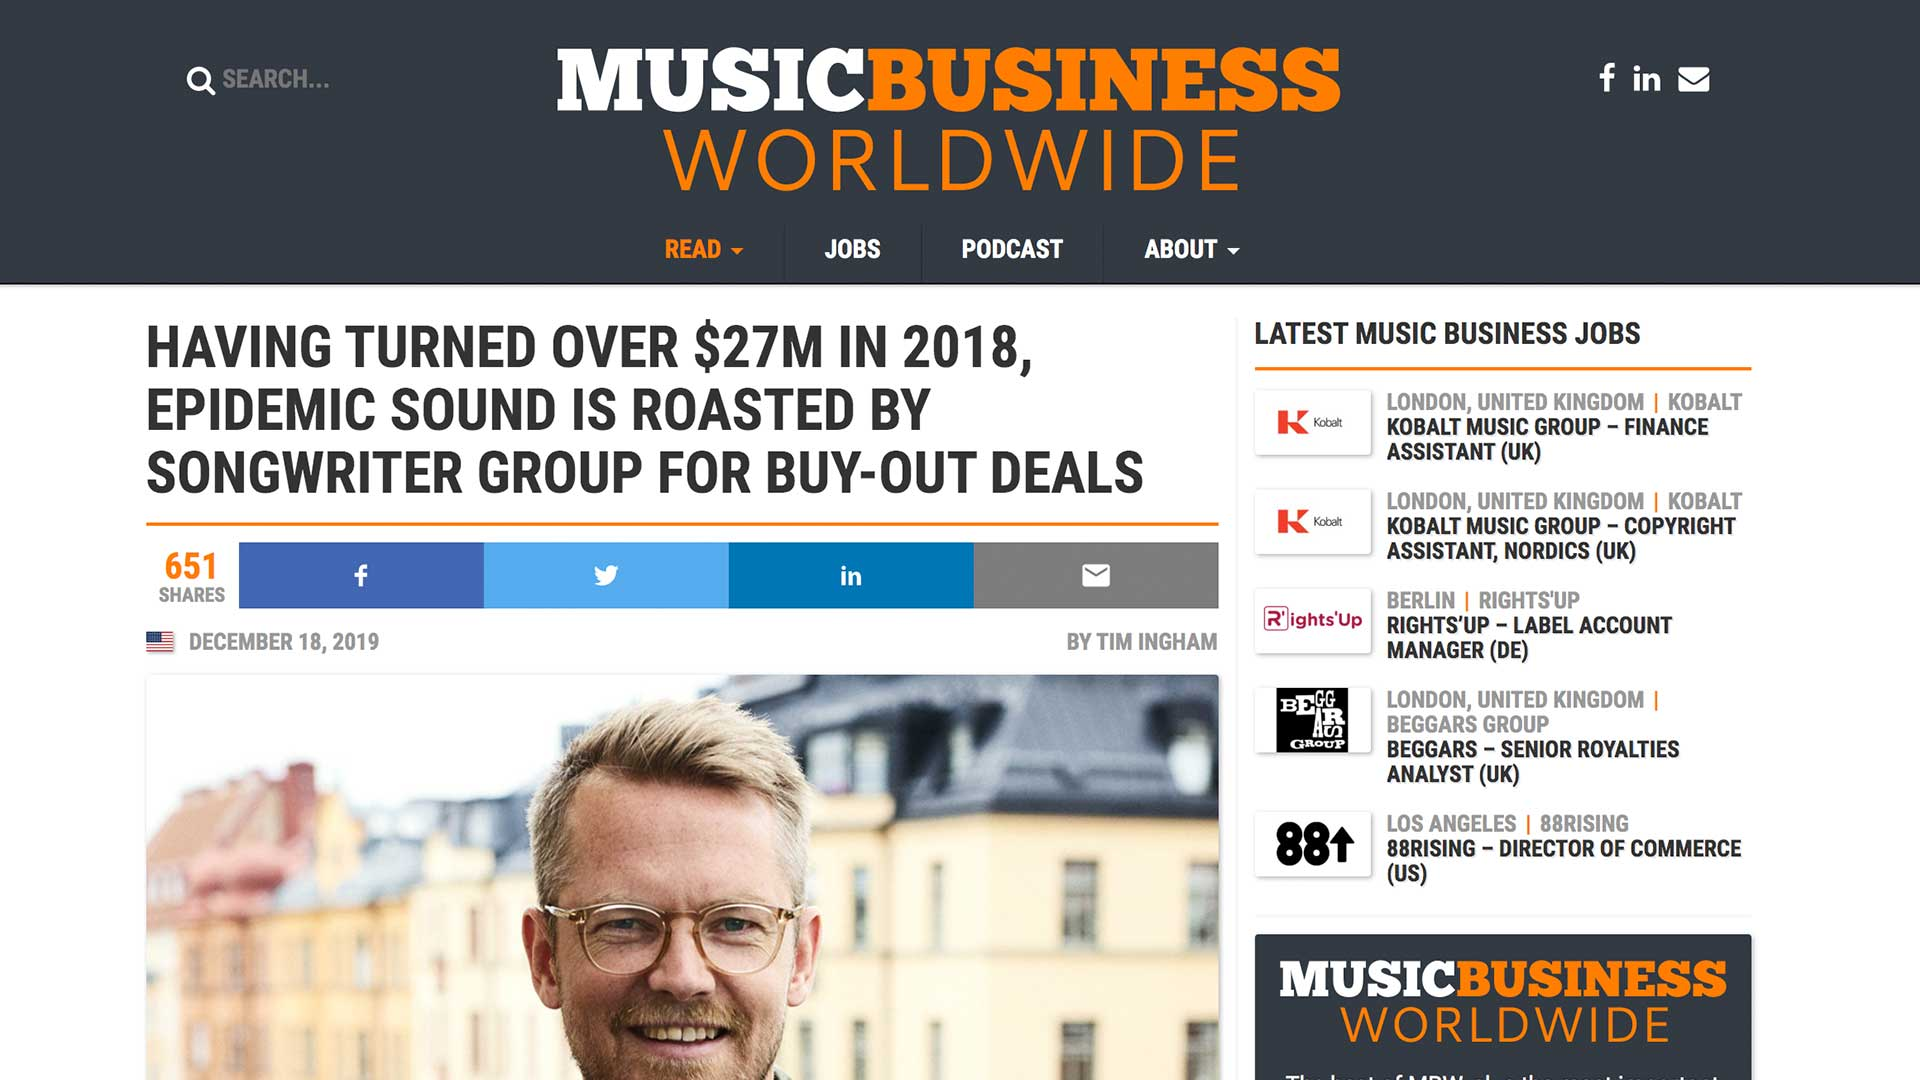 Fairness Rocks News HAVING TURNED OVER $27M IN 2018, EPIDEMIC SOUND IS ROASTED BY SONGWRITER GROUP FOR BUY-OUT DEALS